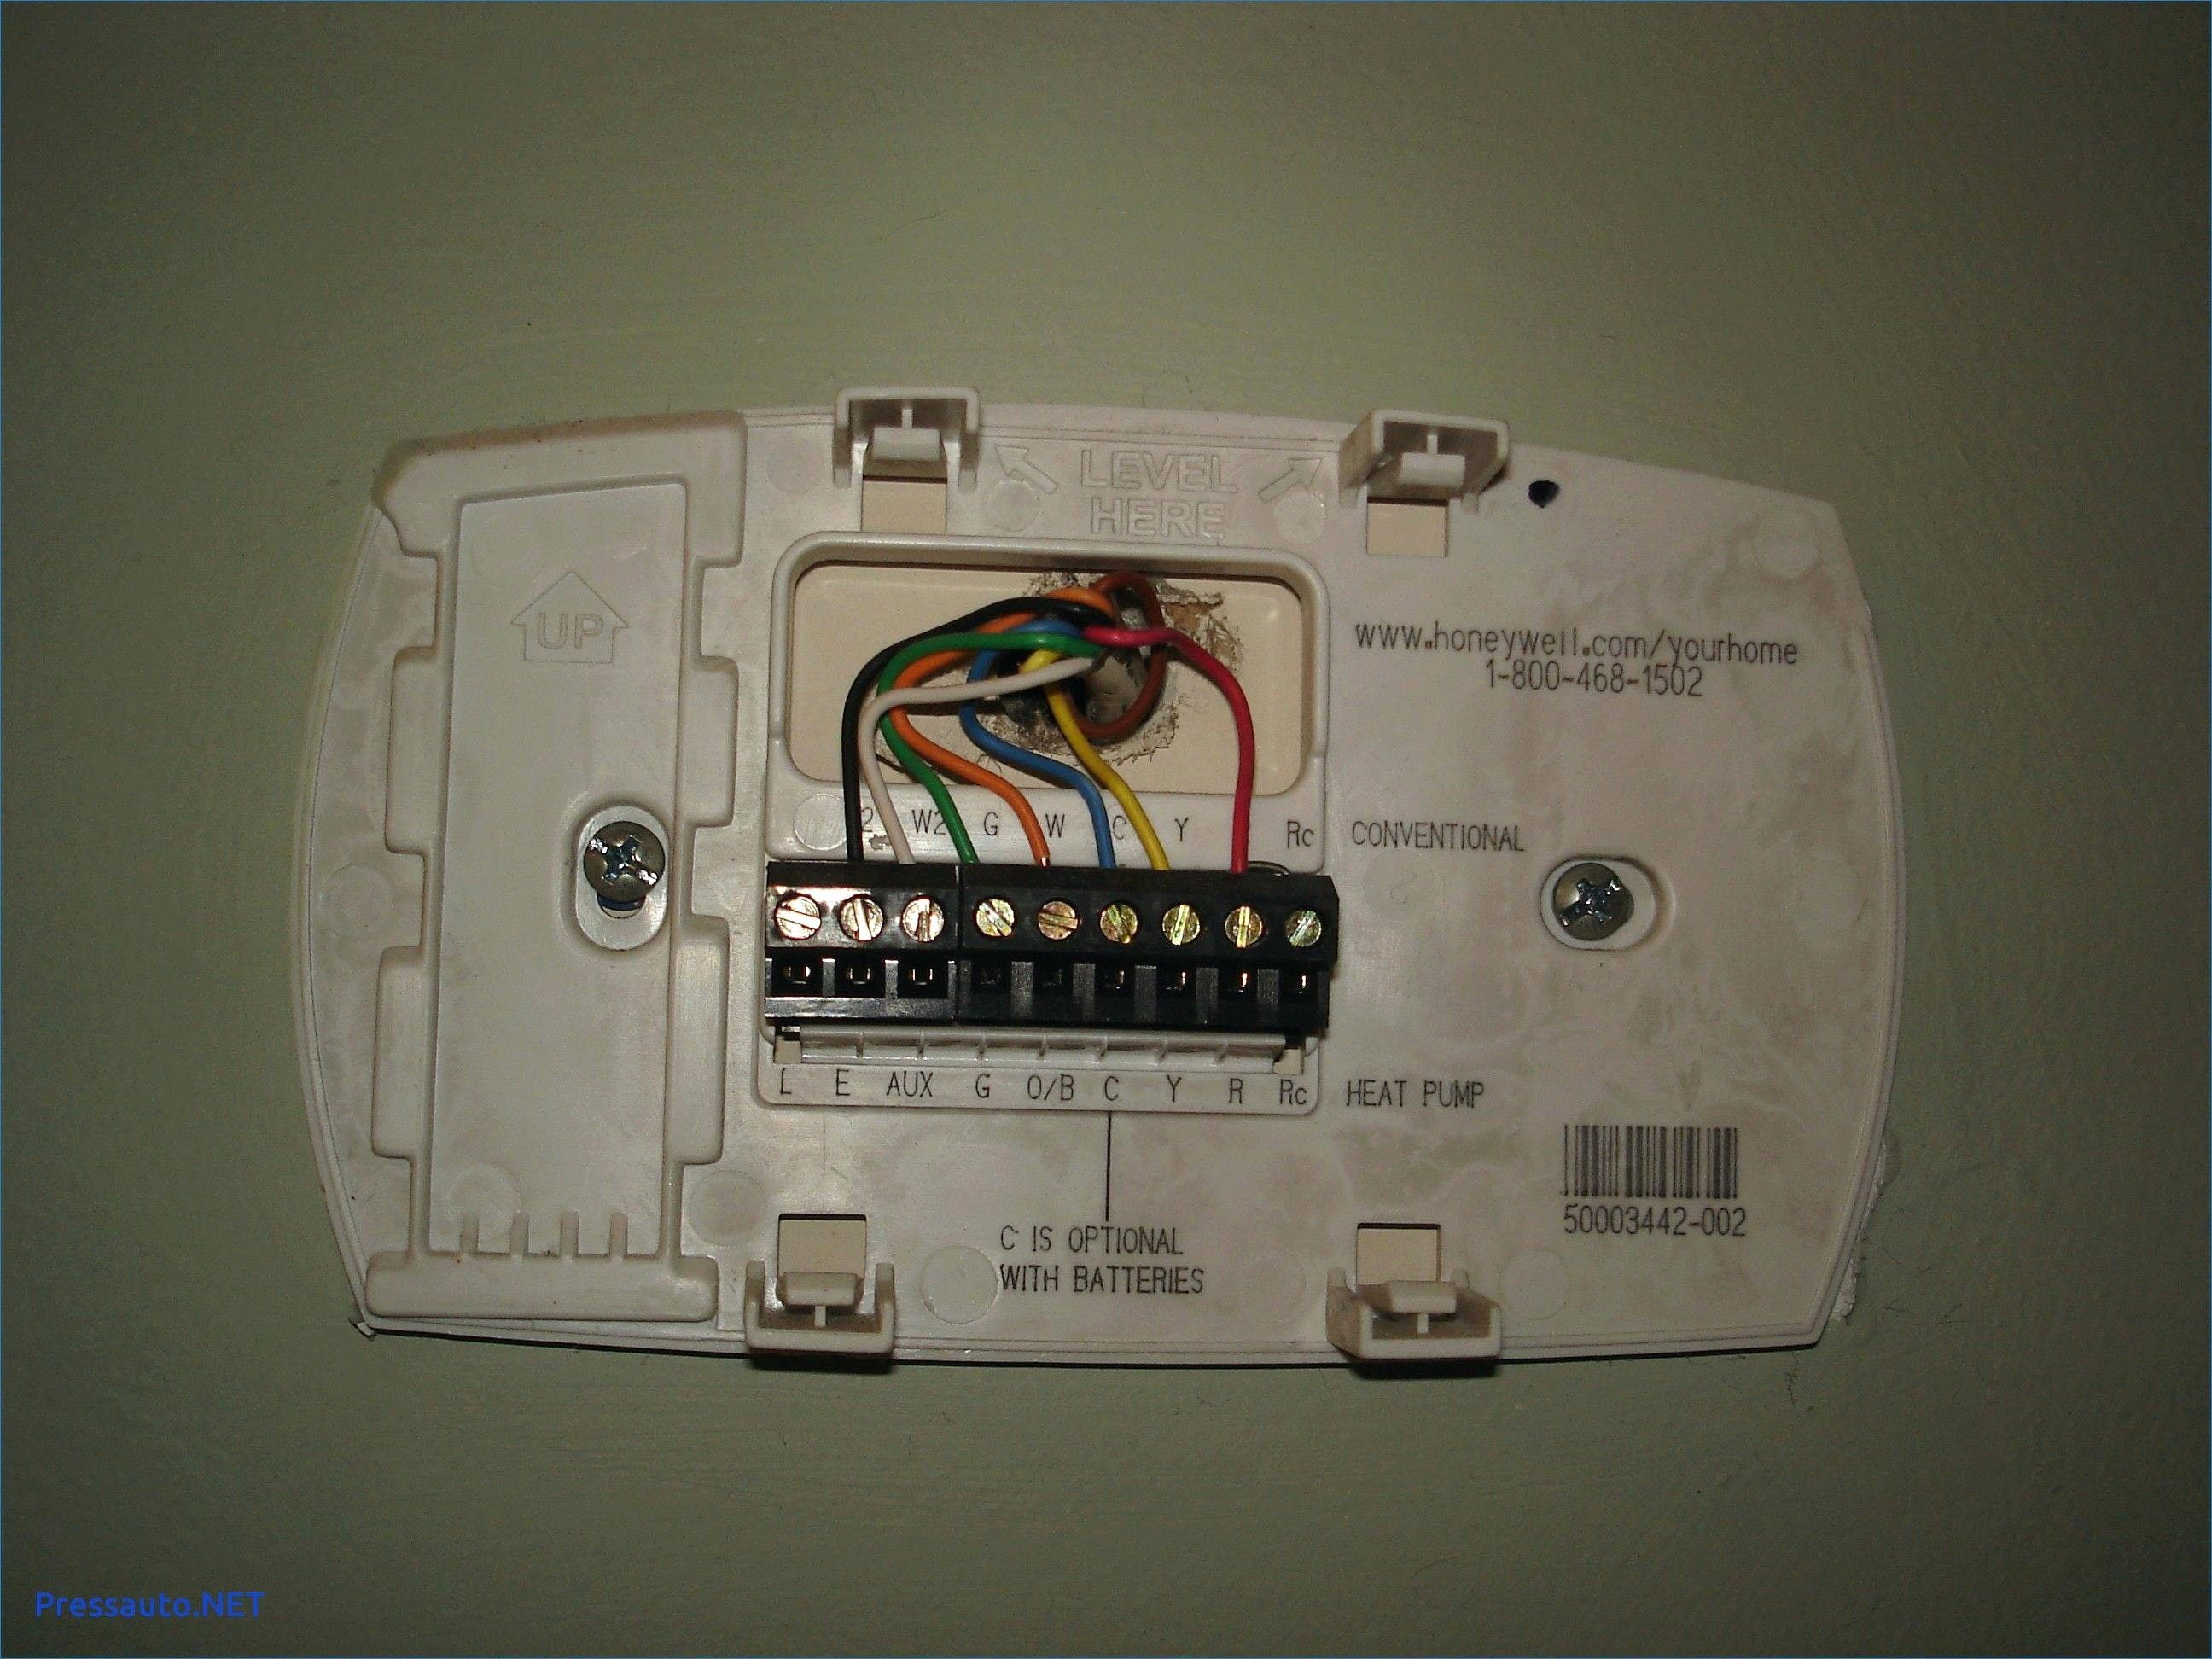 Unique Wiring Diagram For Honeywell Thermostat Rth2300b Diagram Diagramsample Diagramtemplate Wiringdi Thermostat Wiring Programmable Thermostat Thermostat